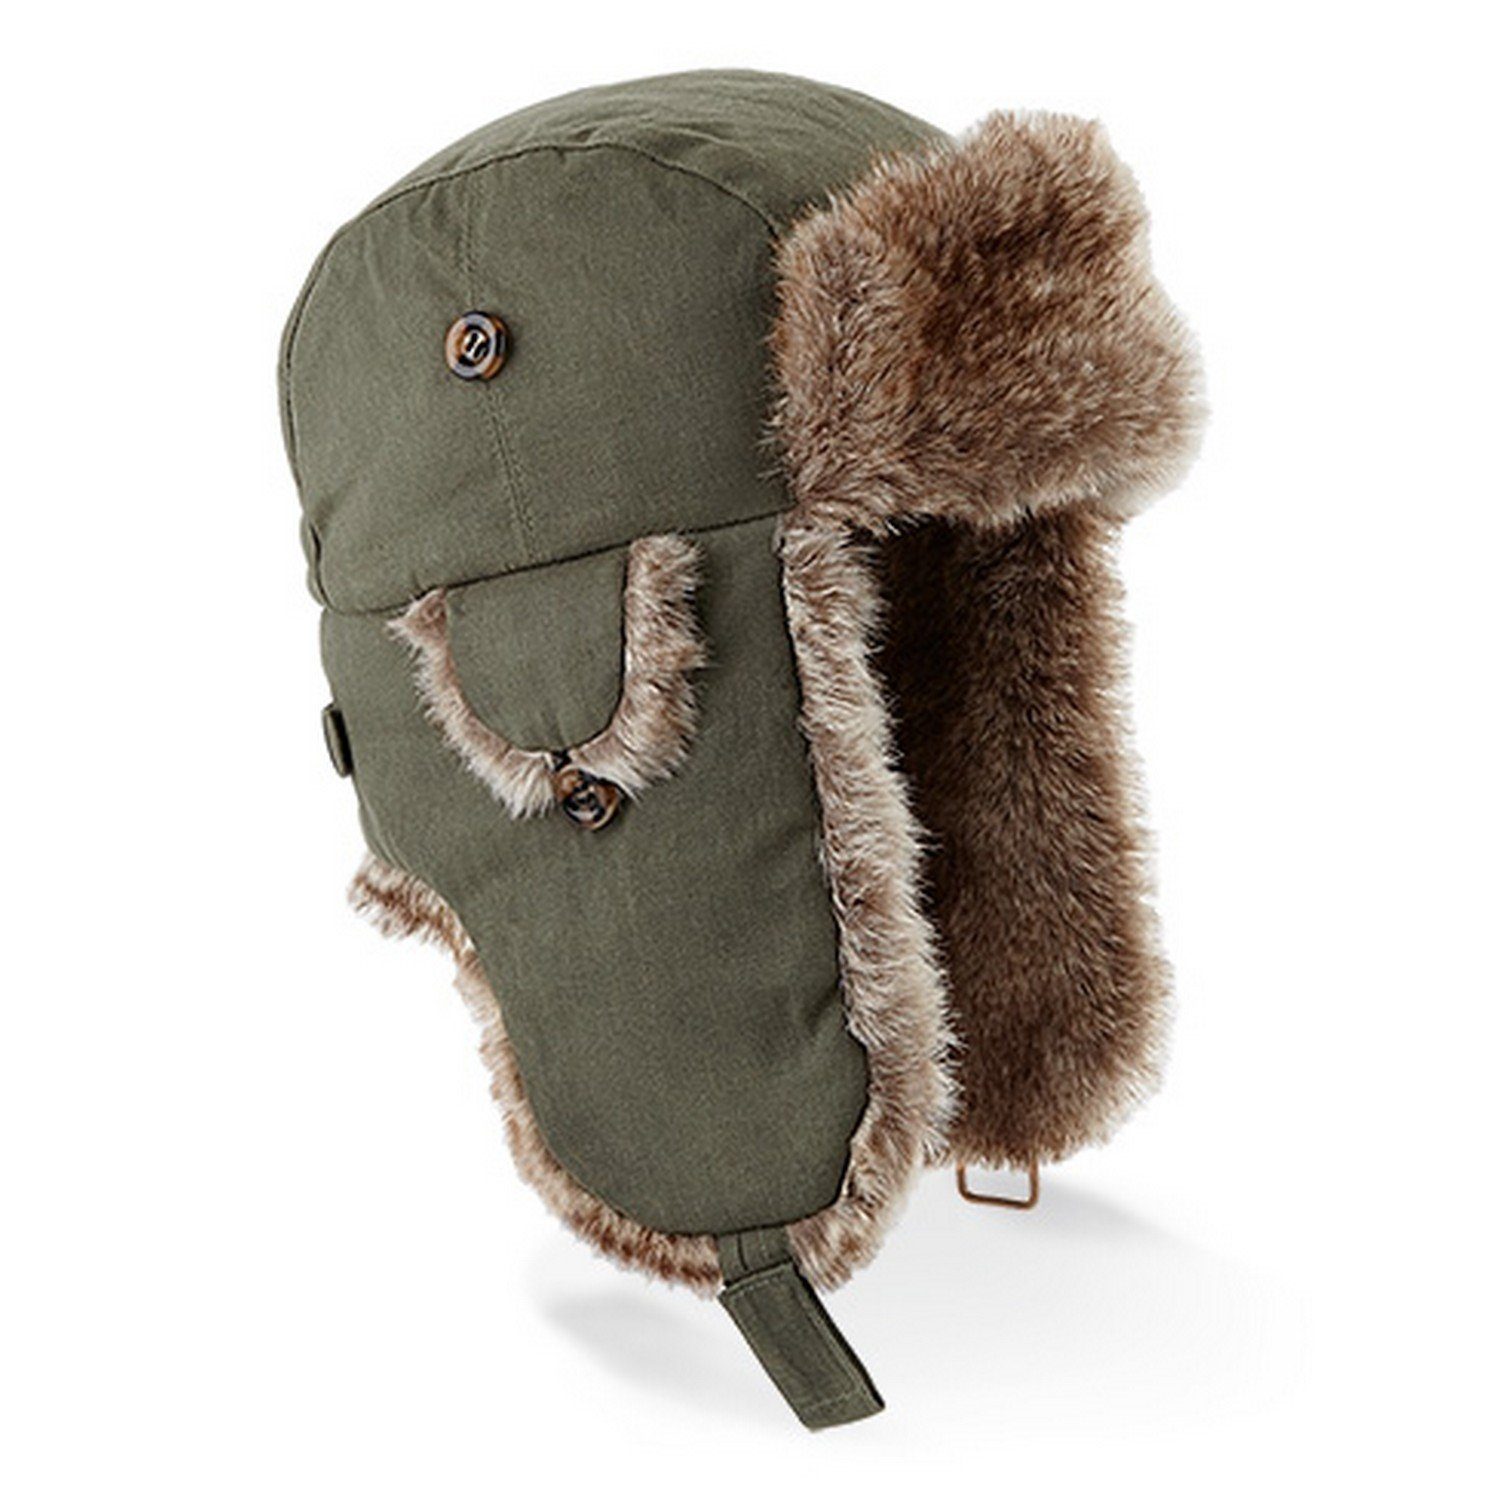 Beechfield Unisex Urban Winter Trapper Hat with Faux Fur Trim